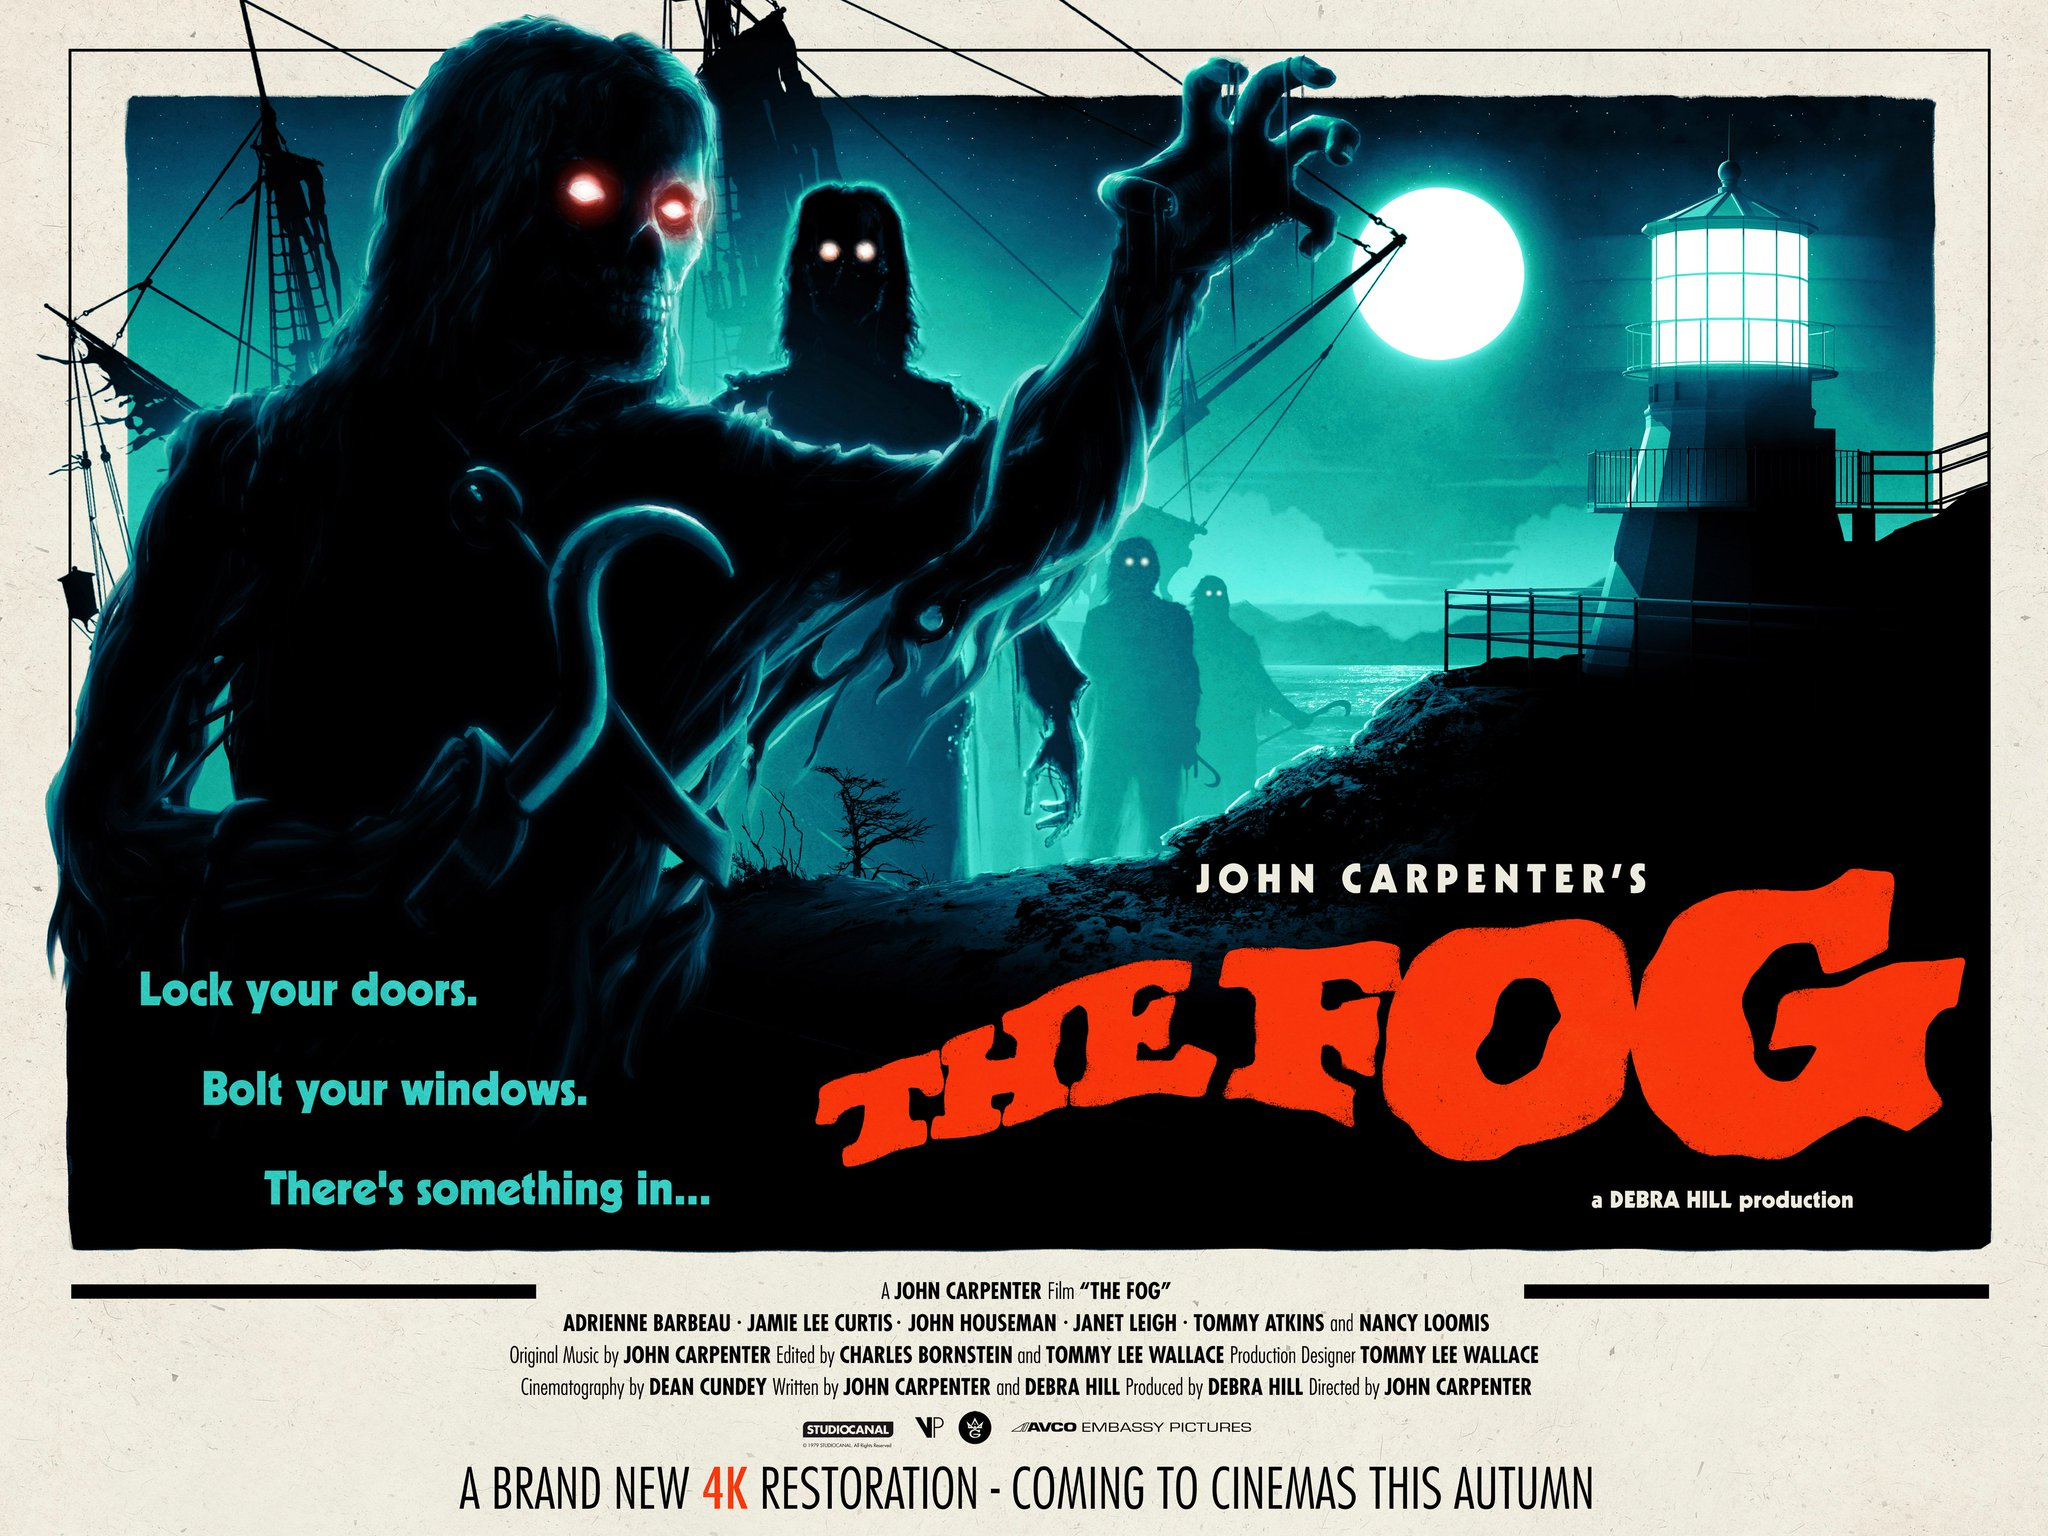 heres-a-cool-john-carpenter-movie-poster-series-by-artist-matt-ferguson1